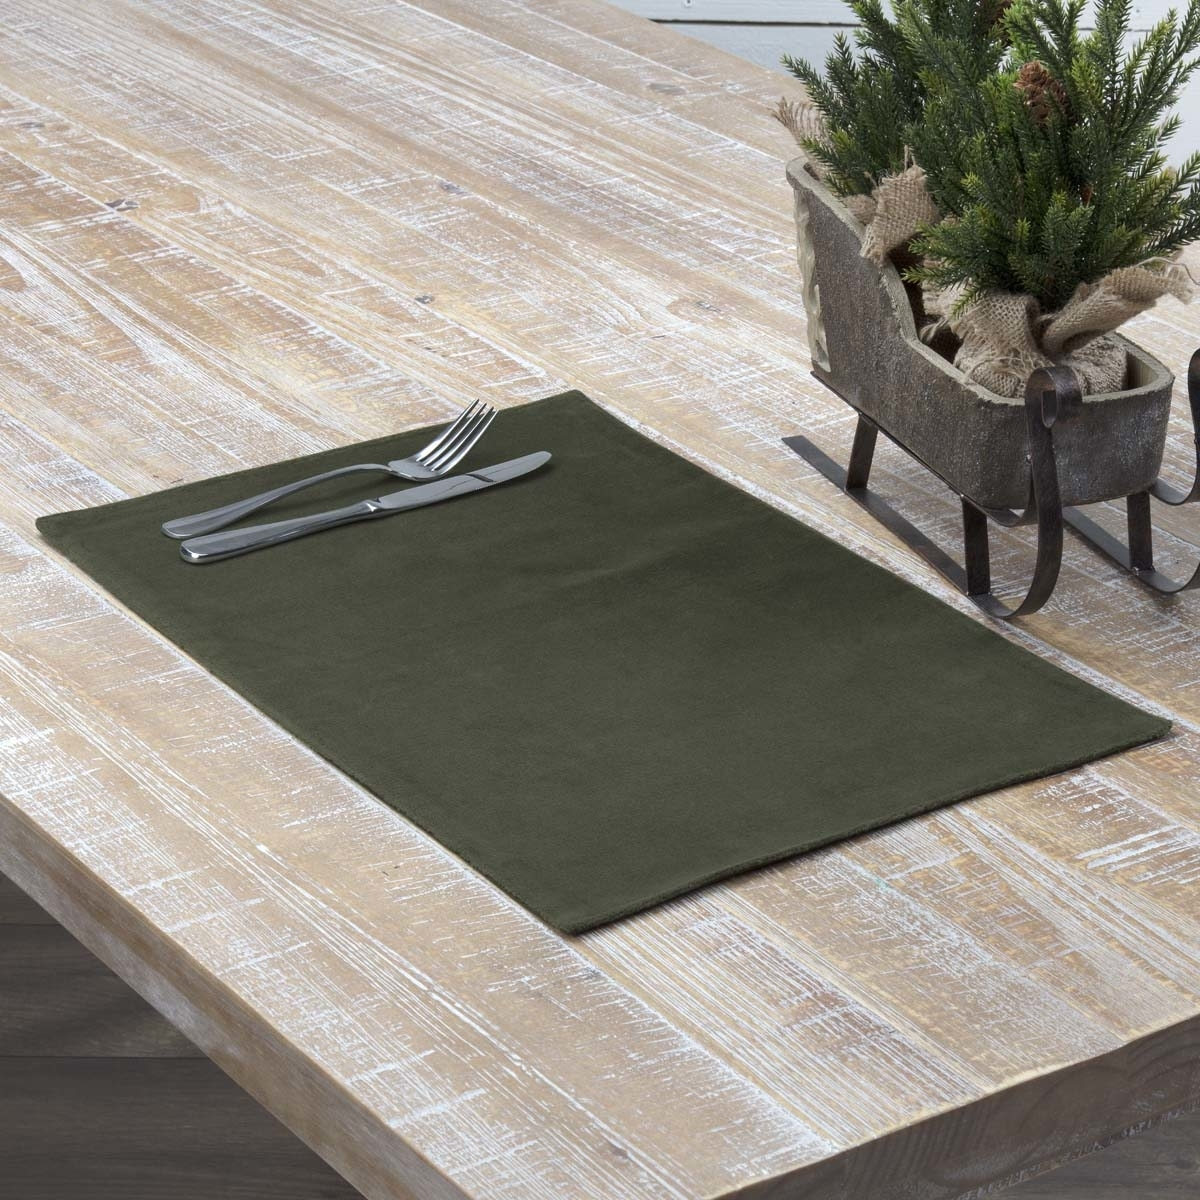 Seasonal Tabletop & Kitchen Velvet Holiday Placemat Set of 6 5b17f29ce2246114043ffe63